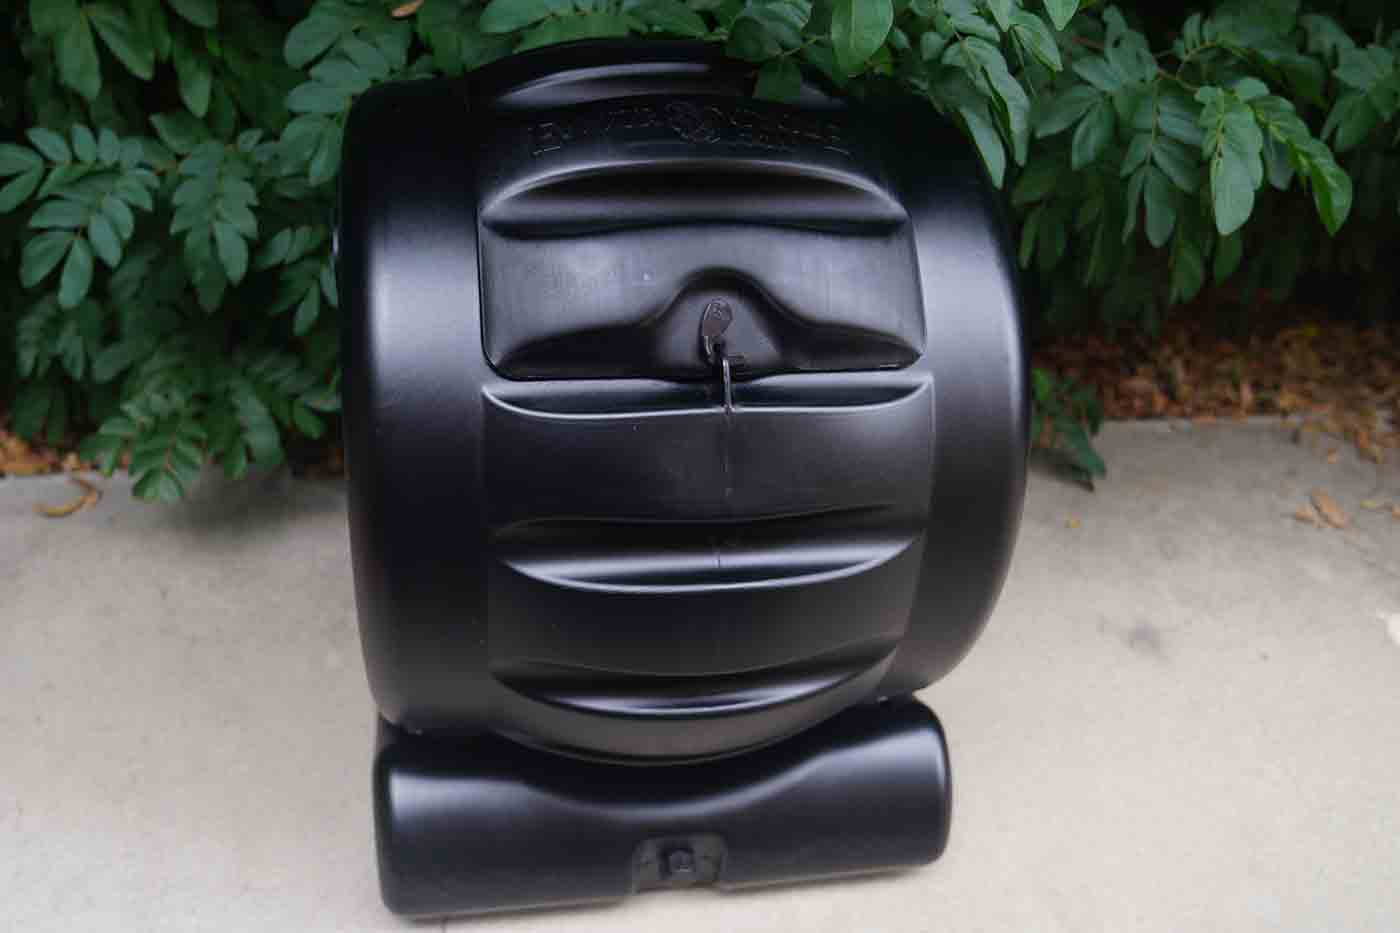 compost bin spinning drum from Envirocycle